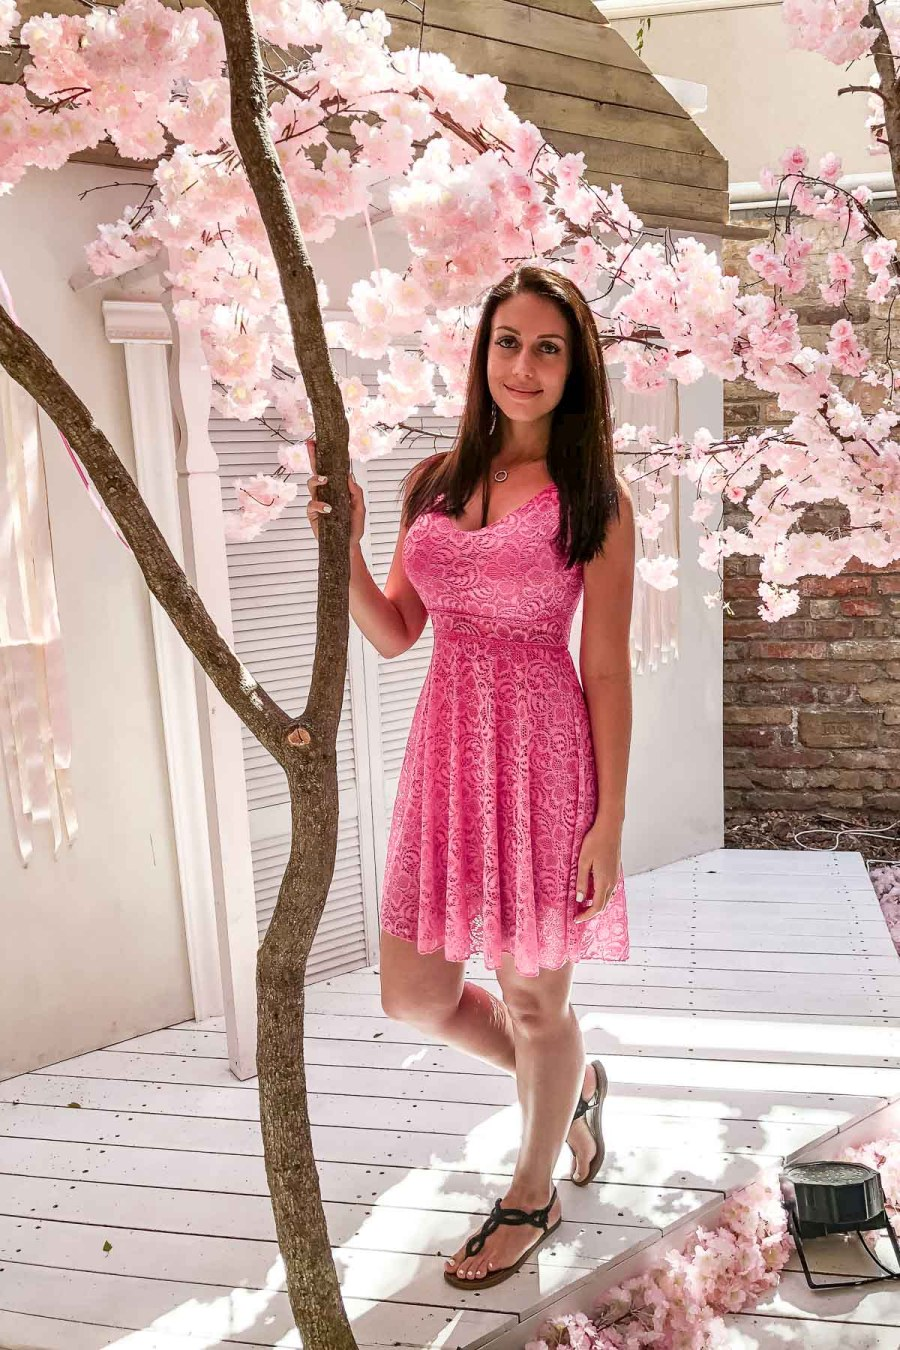 Girl in a pink dress standing under the cherry blossom trees at the Vintage Garden in Budapest